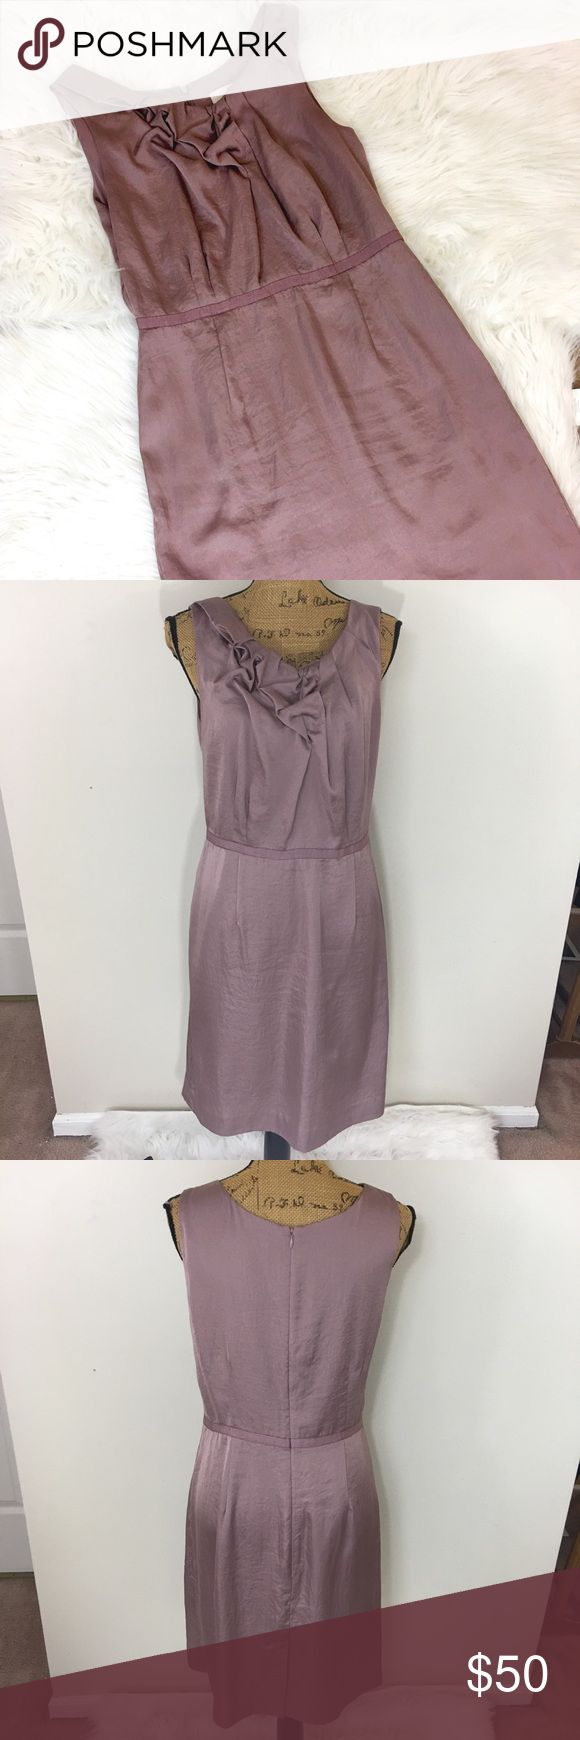 ✨ANN TAYLOR LOFT DRESS✨ Beautiful light lilac (as I see it) Ann Taylor LOFT sleeveless dress. Pretty rouching detail at neckline. Size 10. Single vent in the back. Fully lined. 100% polyester. Excellent condition LOFT Dresses